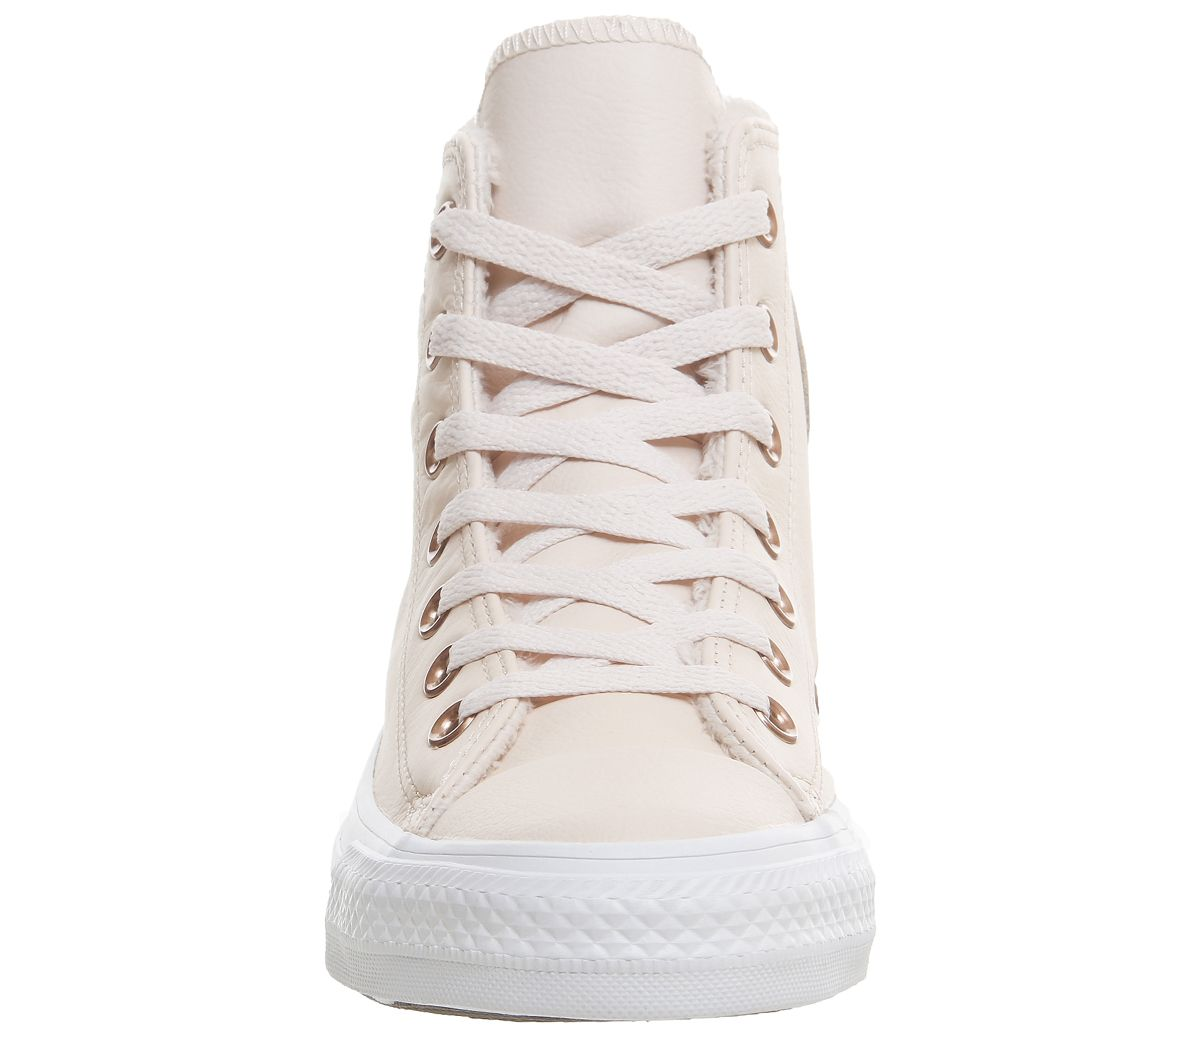 605ea14444b8 Converse All Star Hi Leather Pastel Rose Tan Fur - Hers trainers